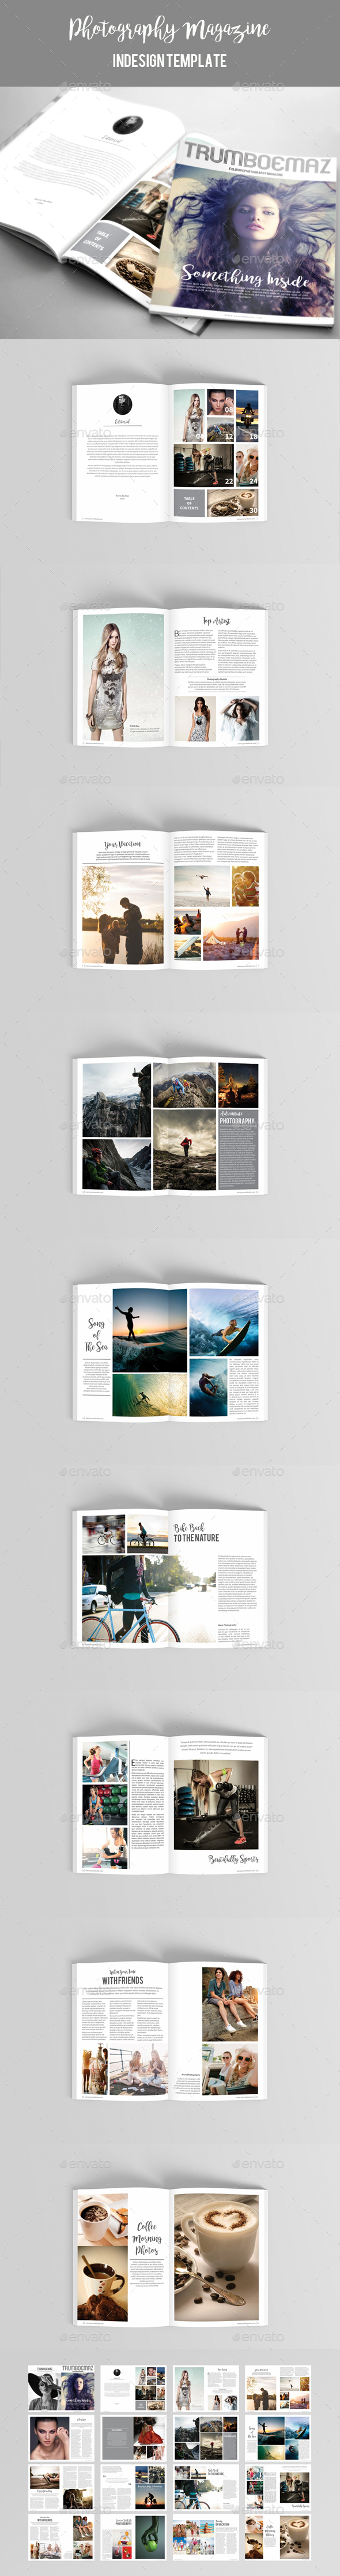 Photography Magazine Template - Magazines Print Templates